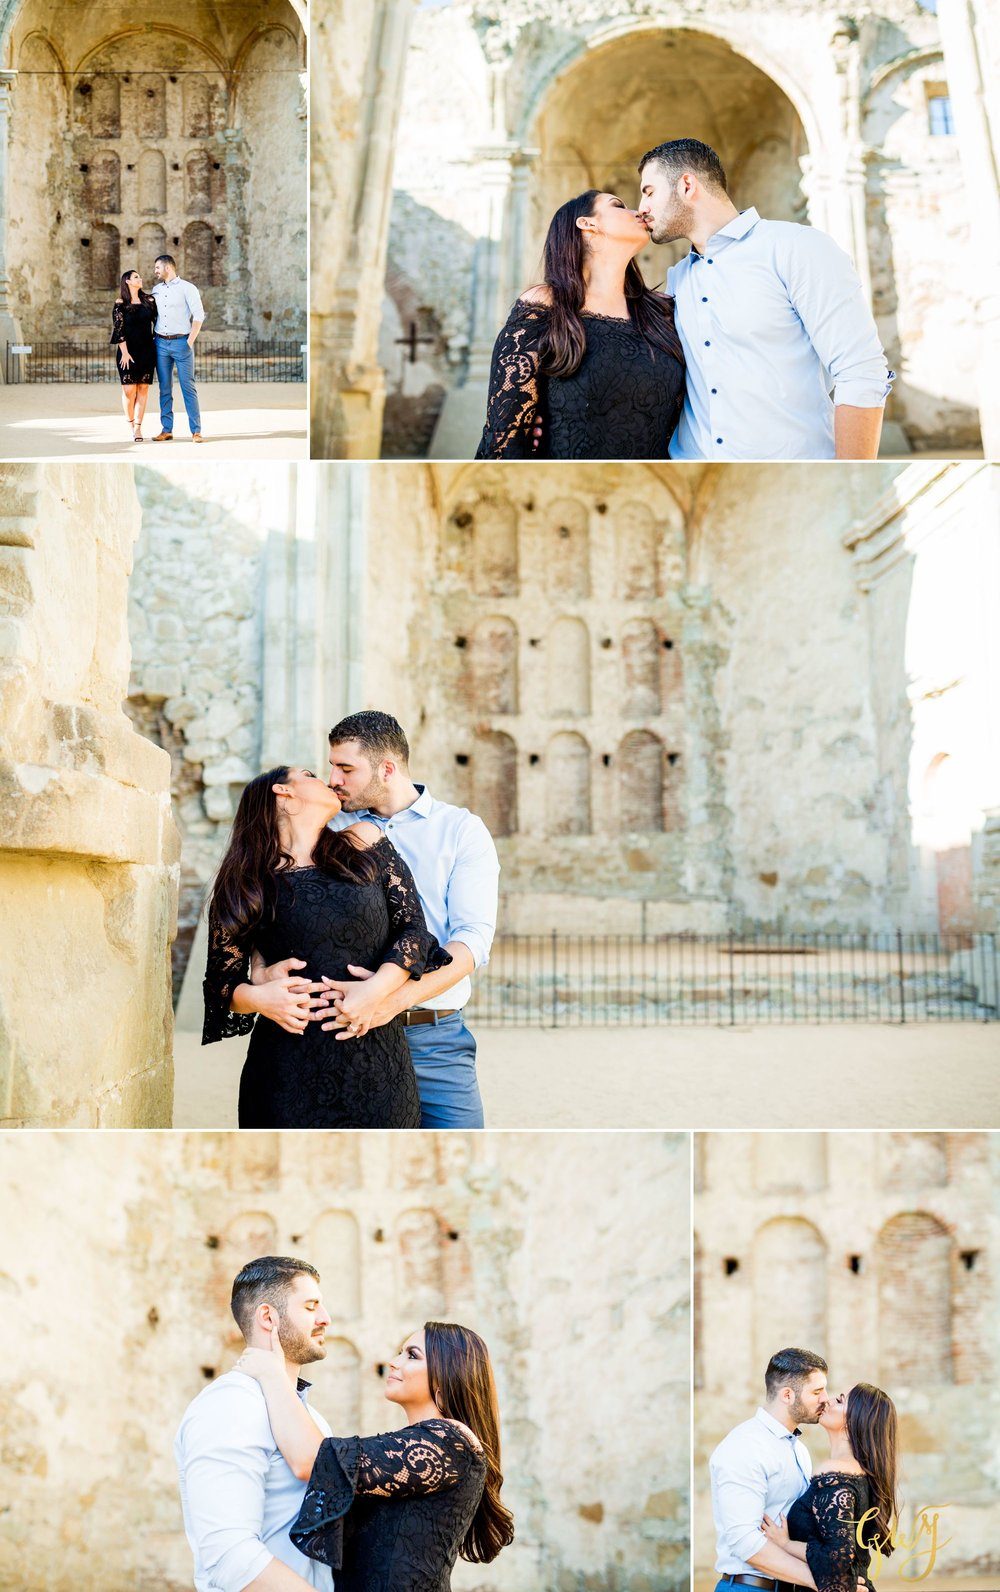 Alejandro + Rachel Mission San Juan Capistrano Strands Beach Dana Point Sunset Engagement by Glass Woods Media 7.jpg